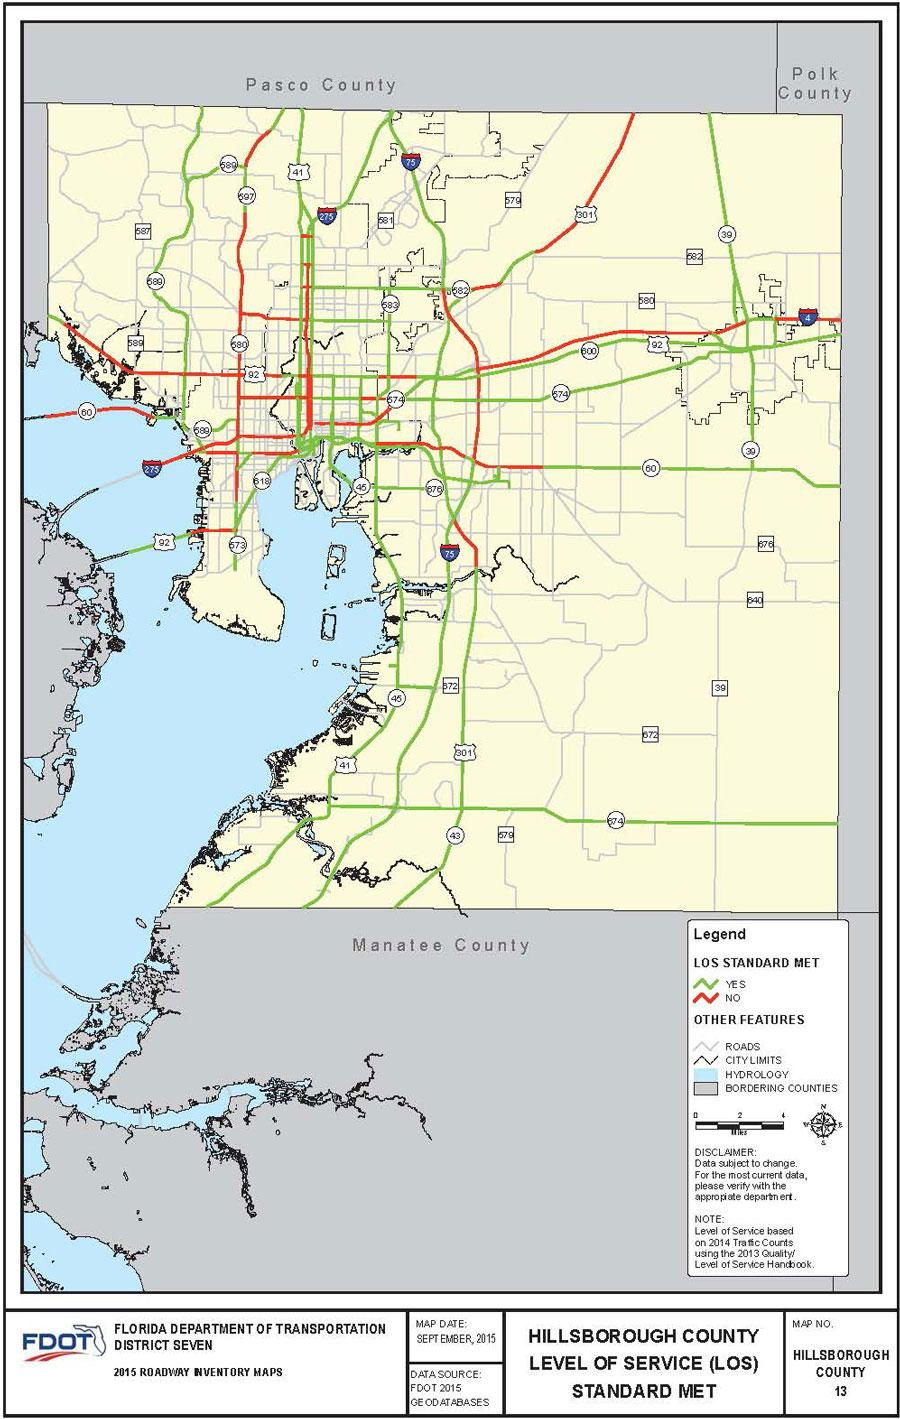 Heres what Tampa Bay traffic looks like according to FDOT Tampa